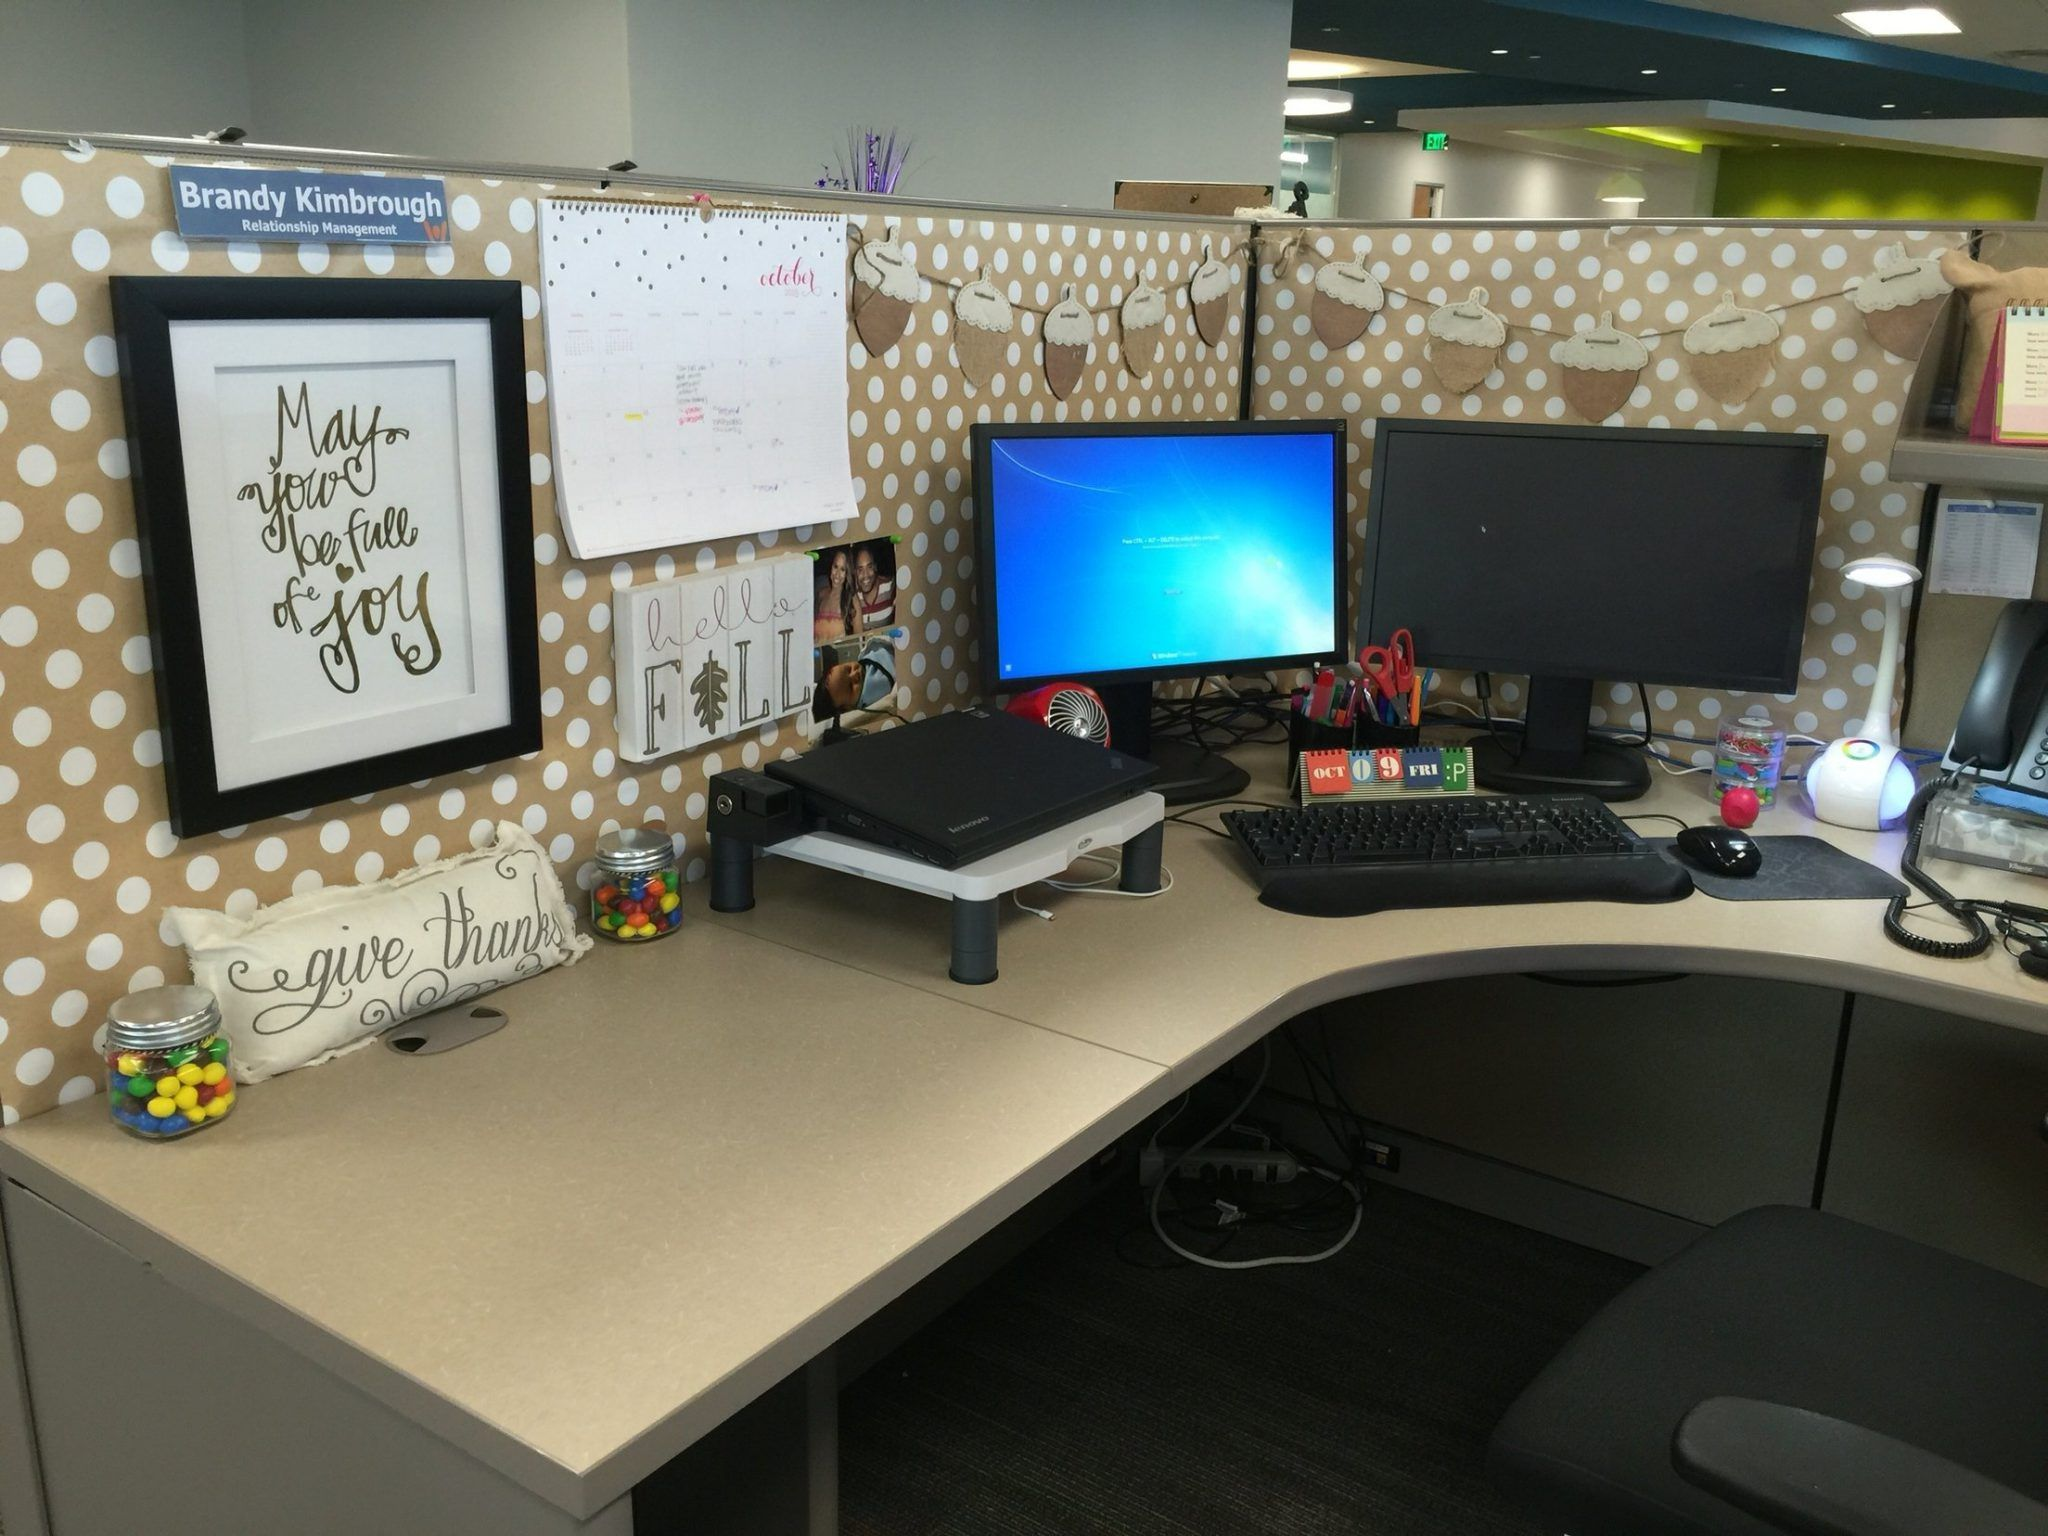 Cubicle Decorating Ideas With Classy Accent Interior Decorating Colors Cubicle Decor Office Work Office Decor Cubicle Decor